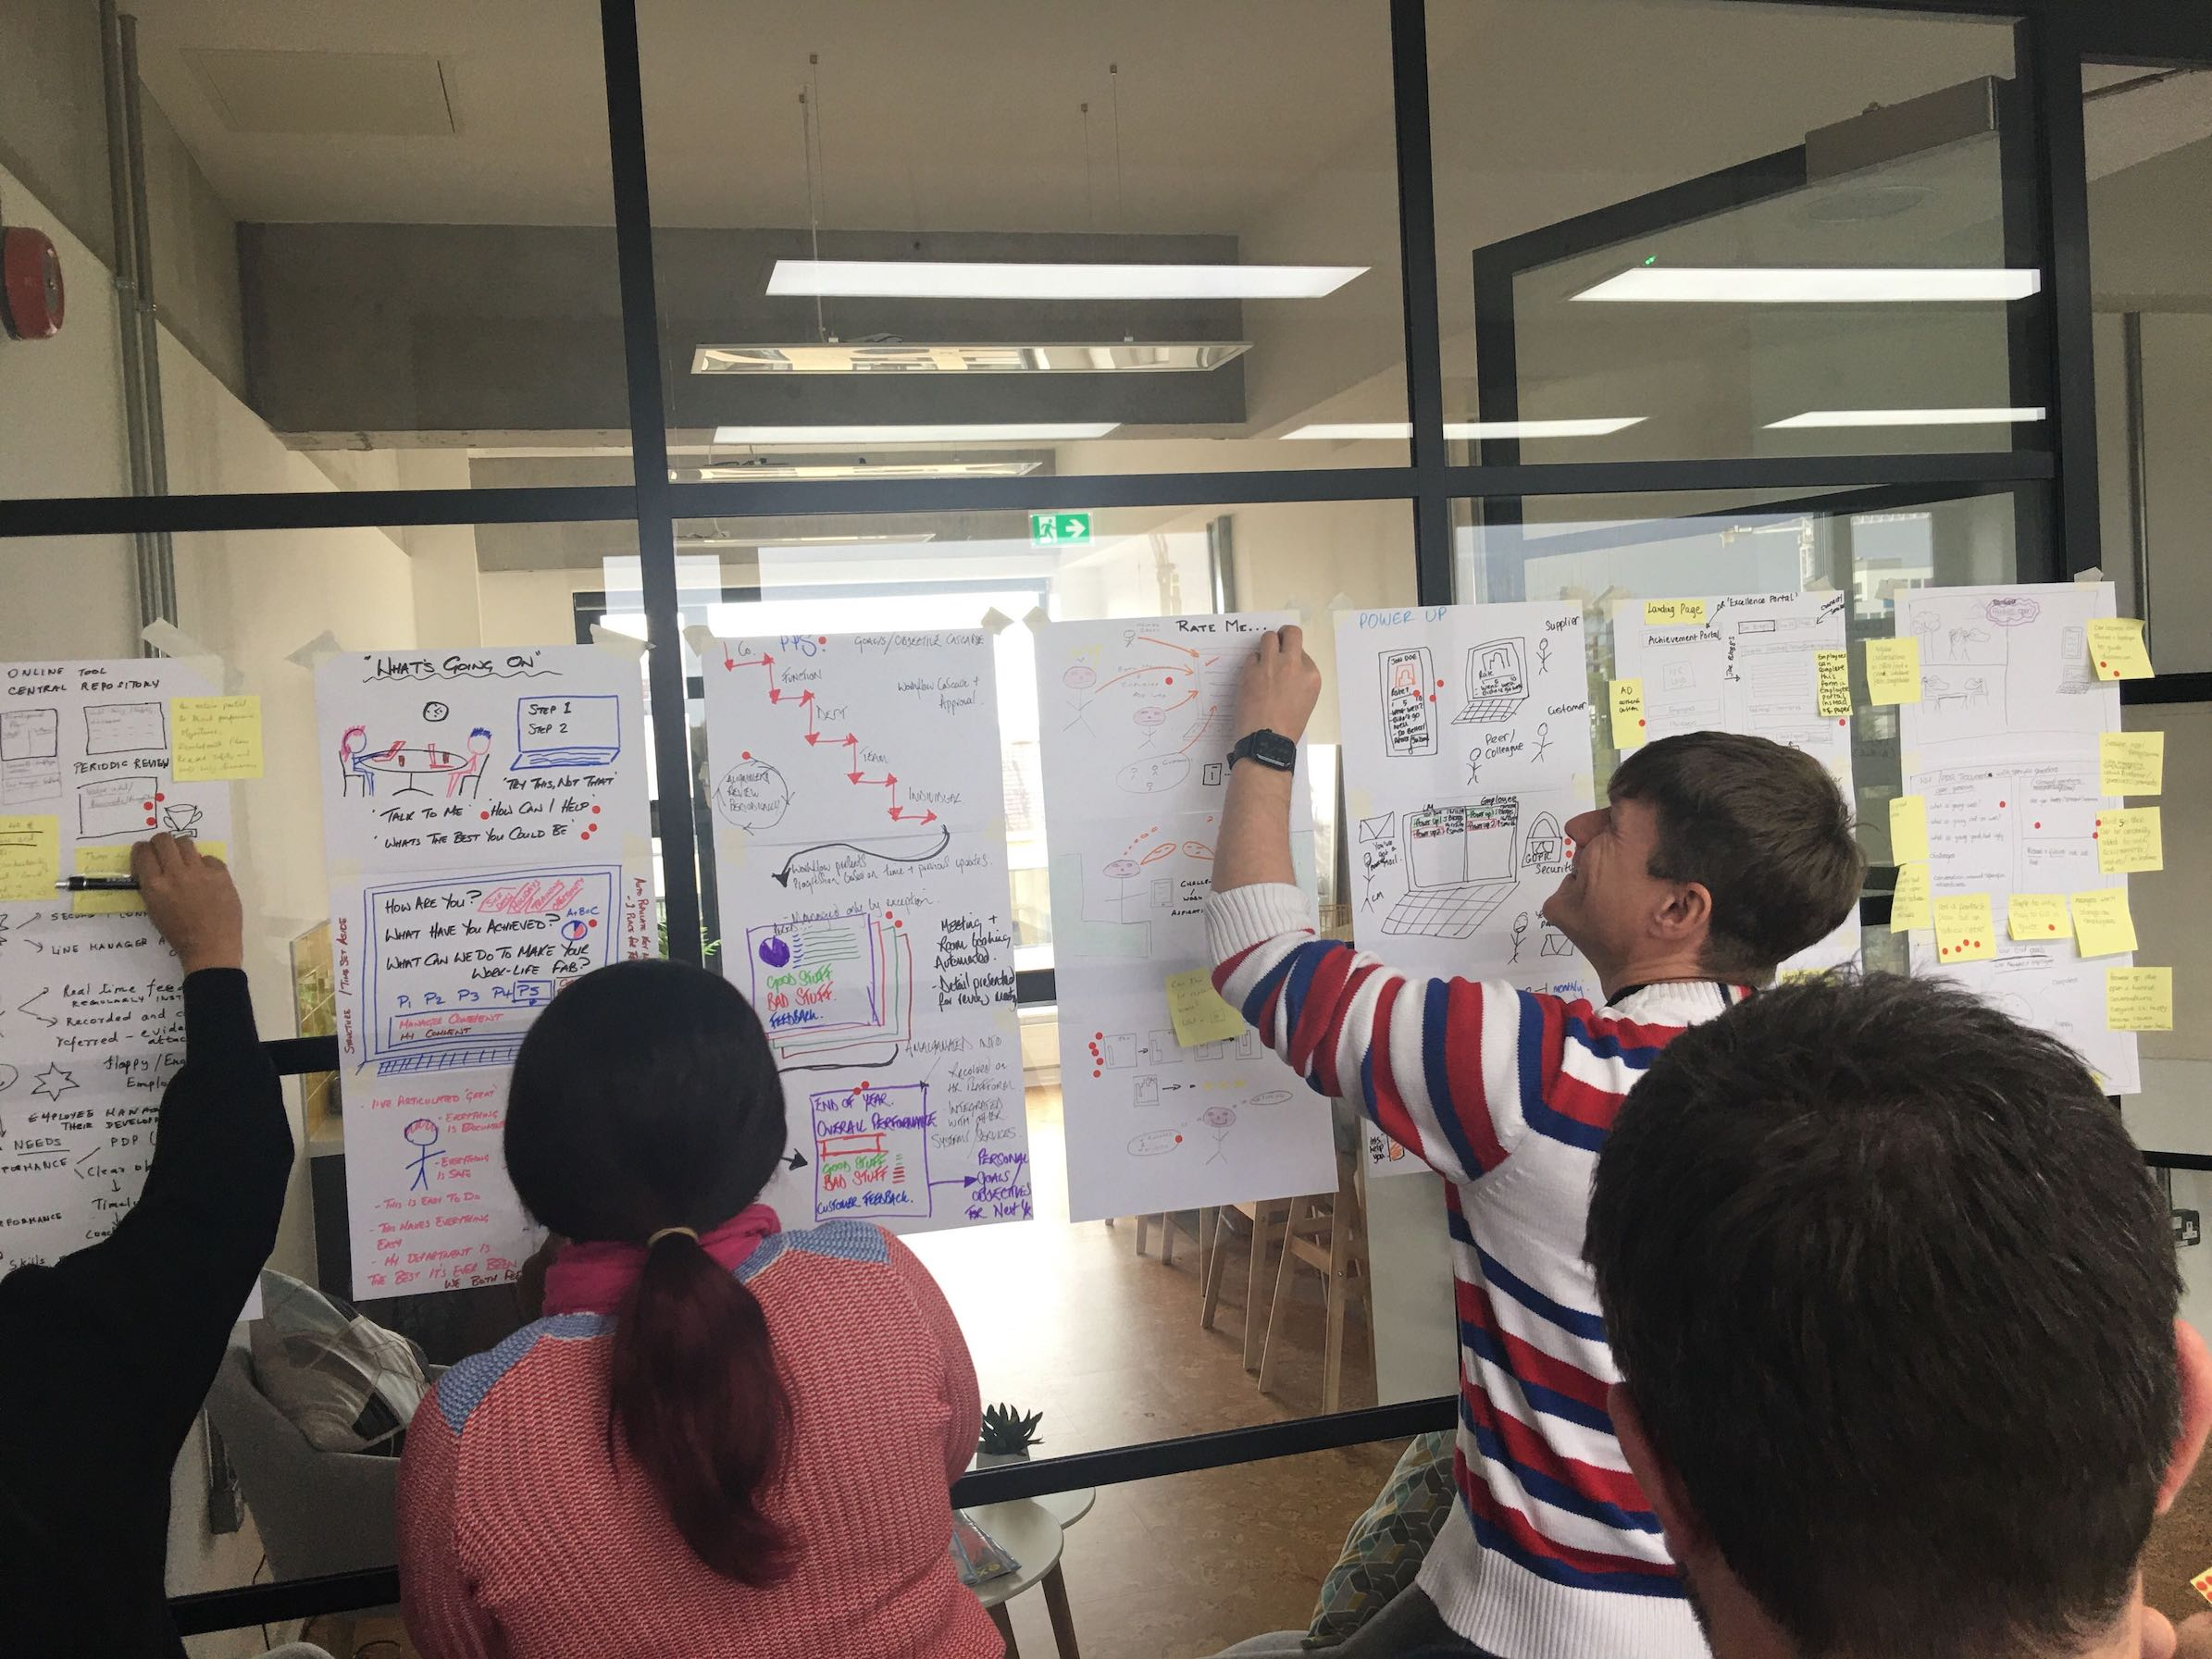 A photograph showing how the team use colored stickers to mark which ideas they like and which can be discounted during a design sprint.